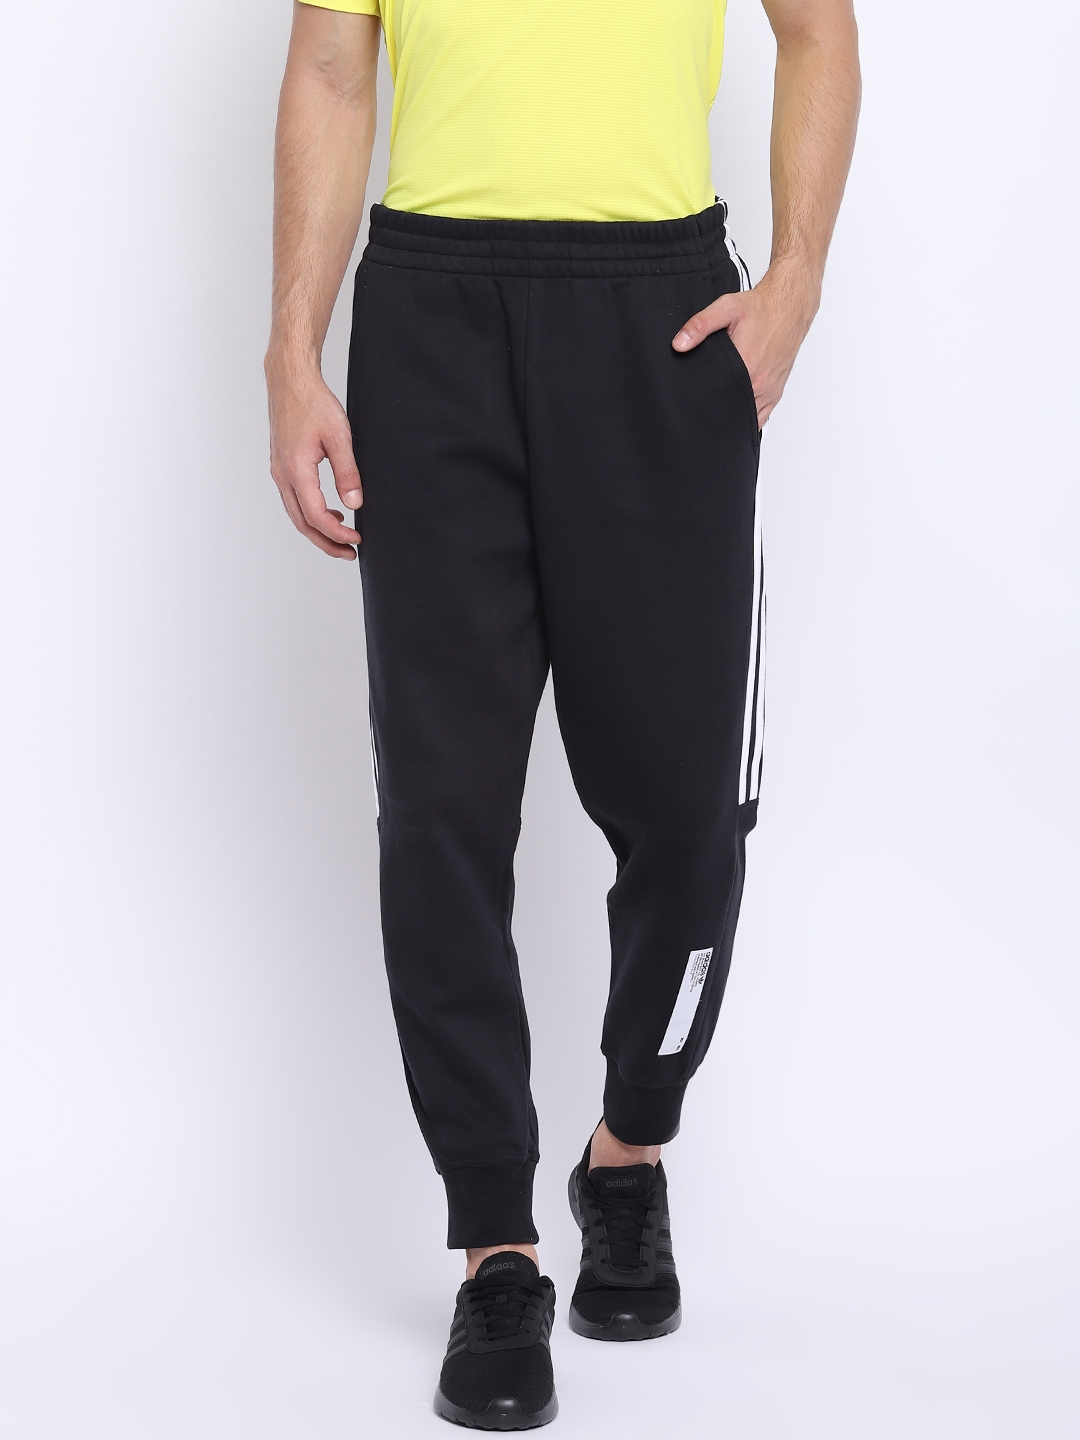 85ecaf907533 Buy ADIDAS Originals Men Black NMD Solid Joggers - Track Pants for ...